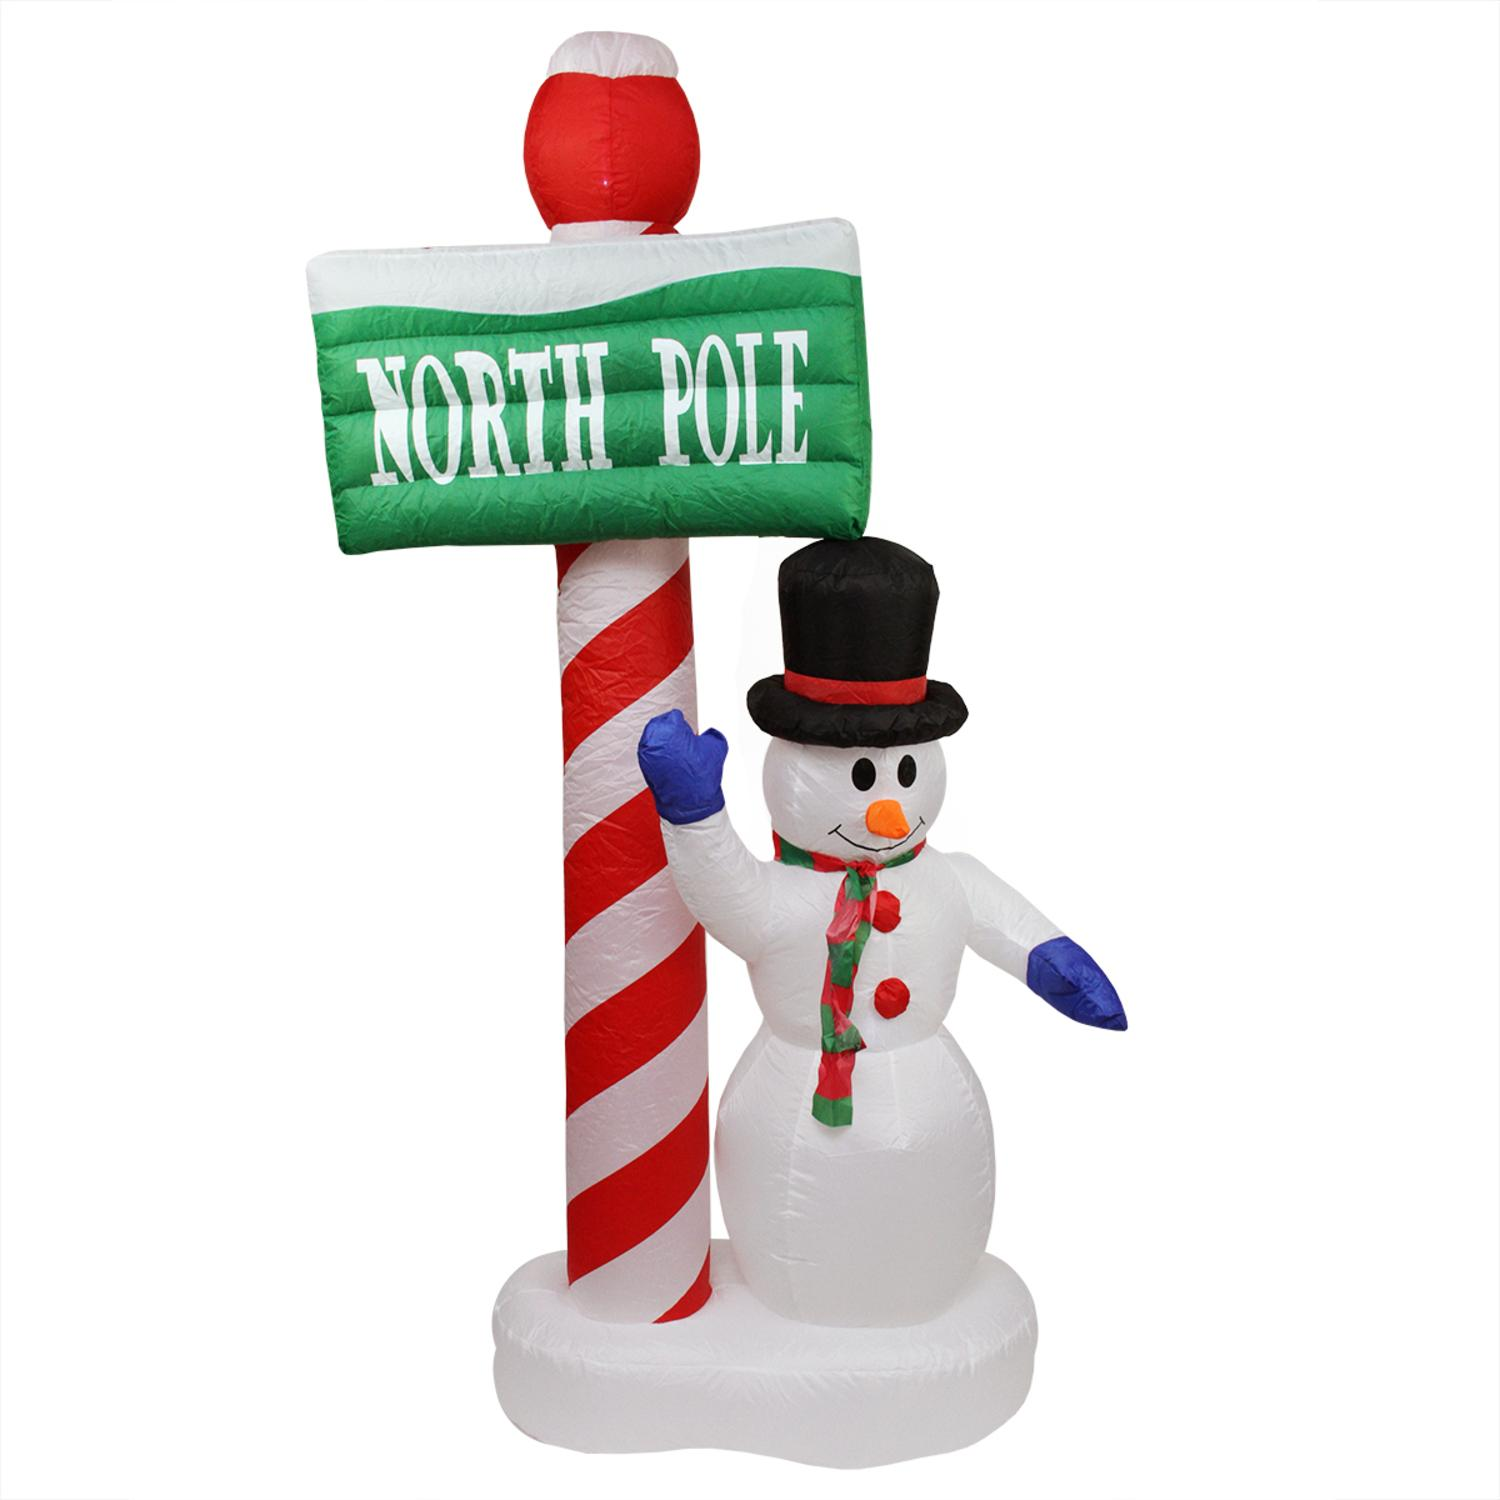 6 inflatable lighted snowman with north pole sign christmas yard art decoration walmartcom - North Pole Christmas Decorations